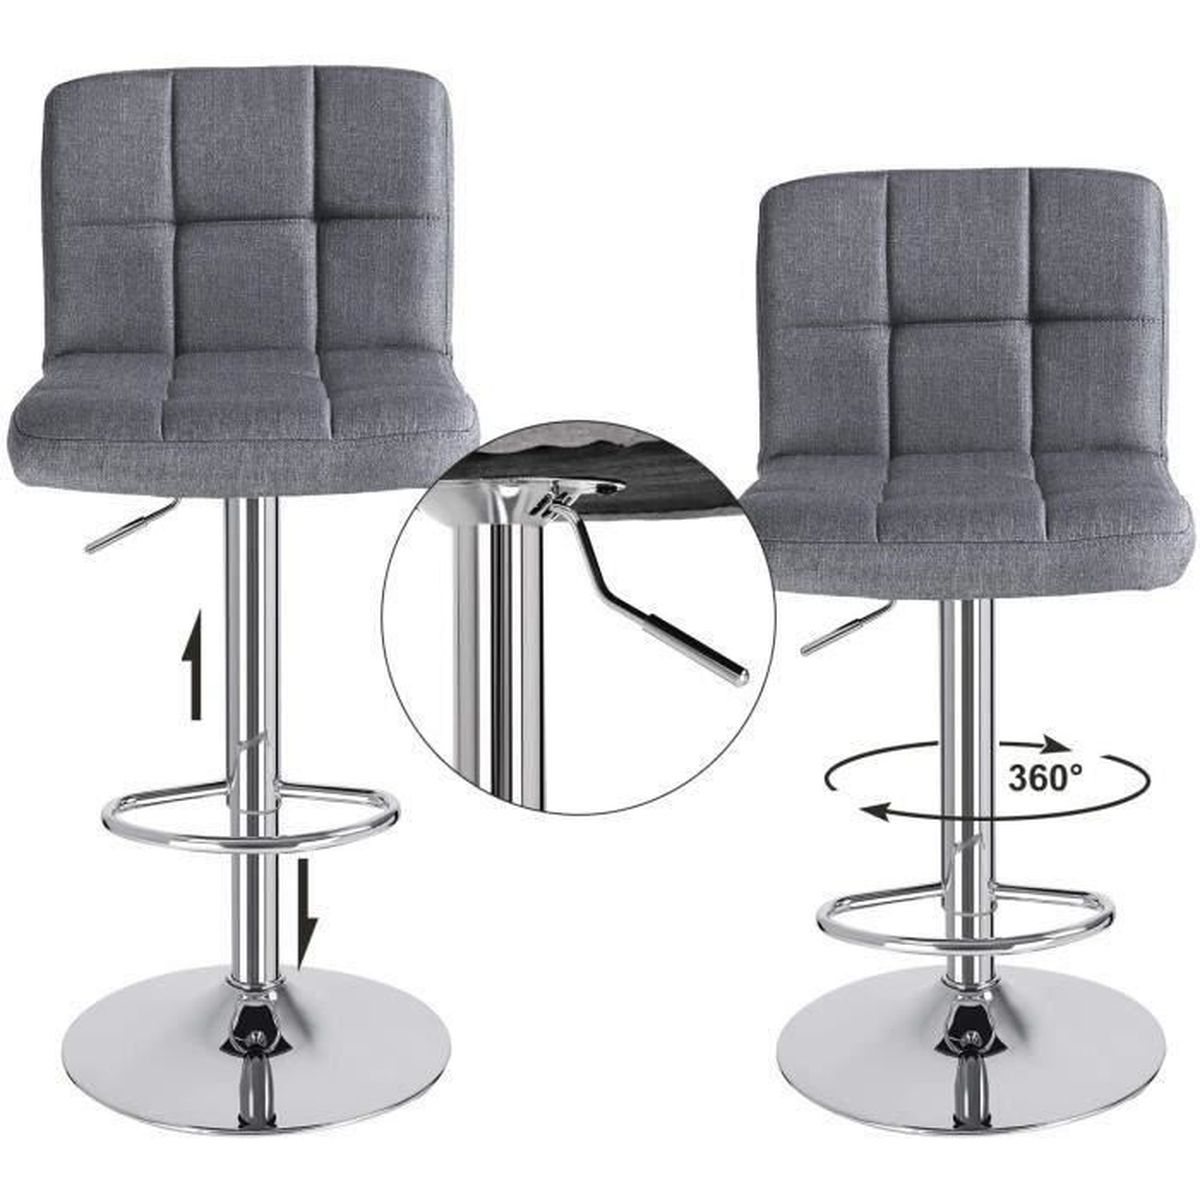 tabouret de bar gris achat vente tabouret haut pas cher cdiscount. Black Bedroom Furniture Sets. Home Design Ideas